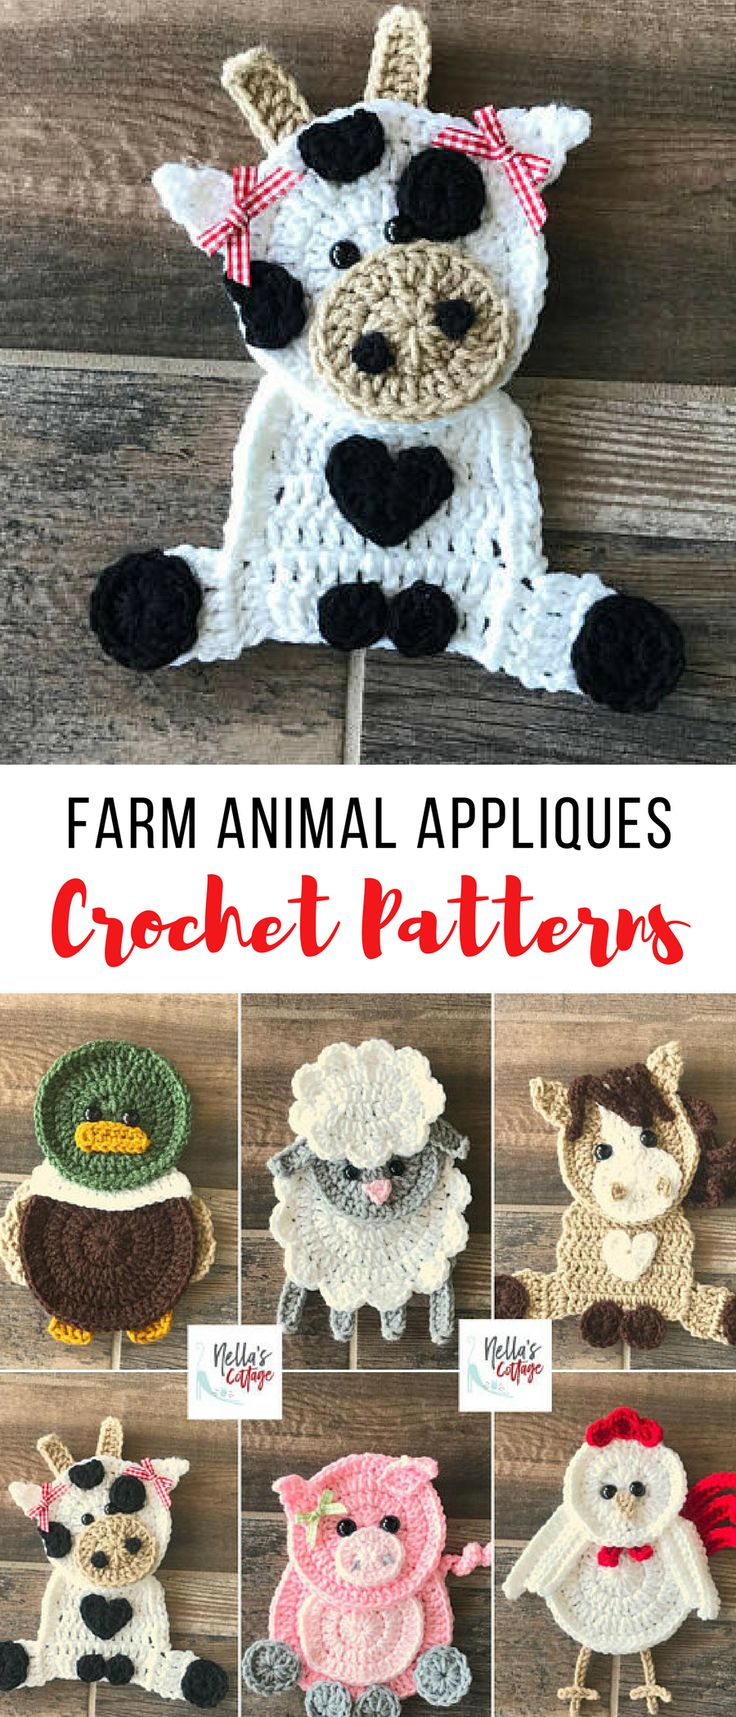 so many things you could put these farm animal crochet appliques on --blankets, hats, scarves...adorable crochet patterns #crochetanimals #crochetfarmanimals #crochetappliquepatterns #crochetpatterns #crochet #affiliate